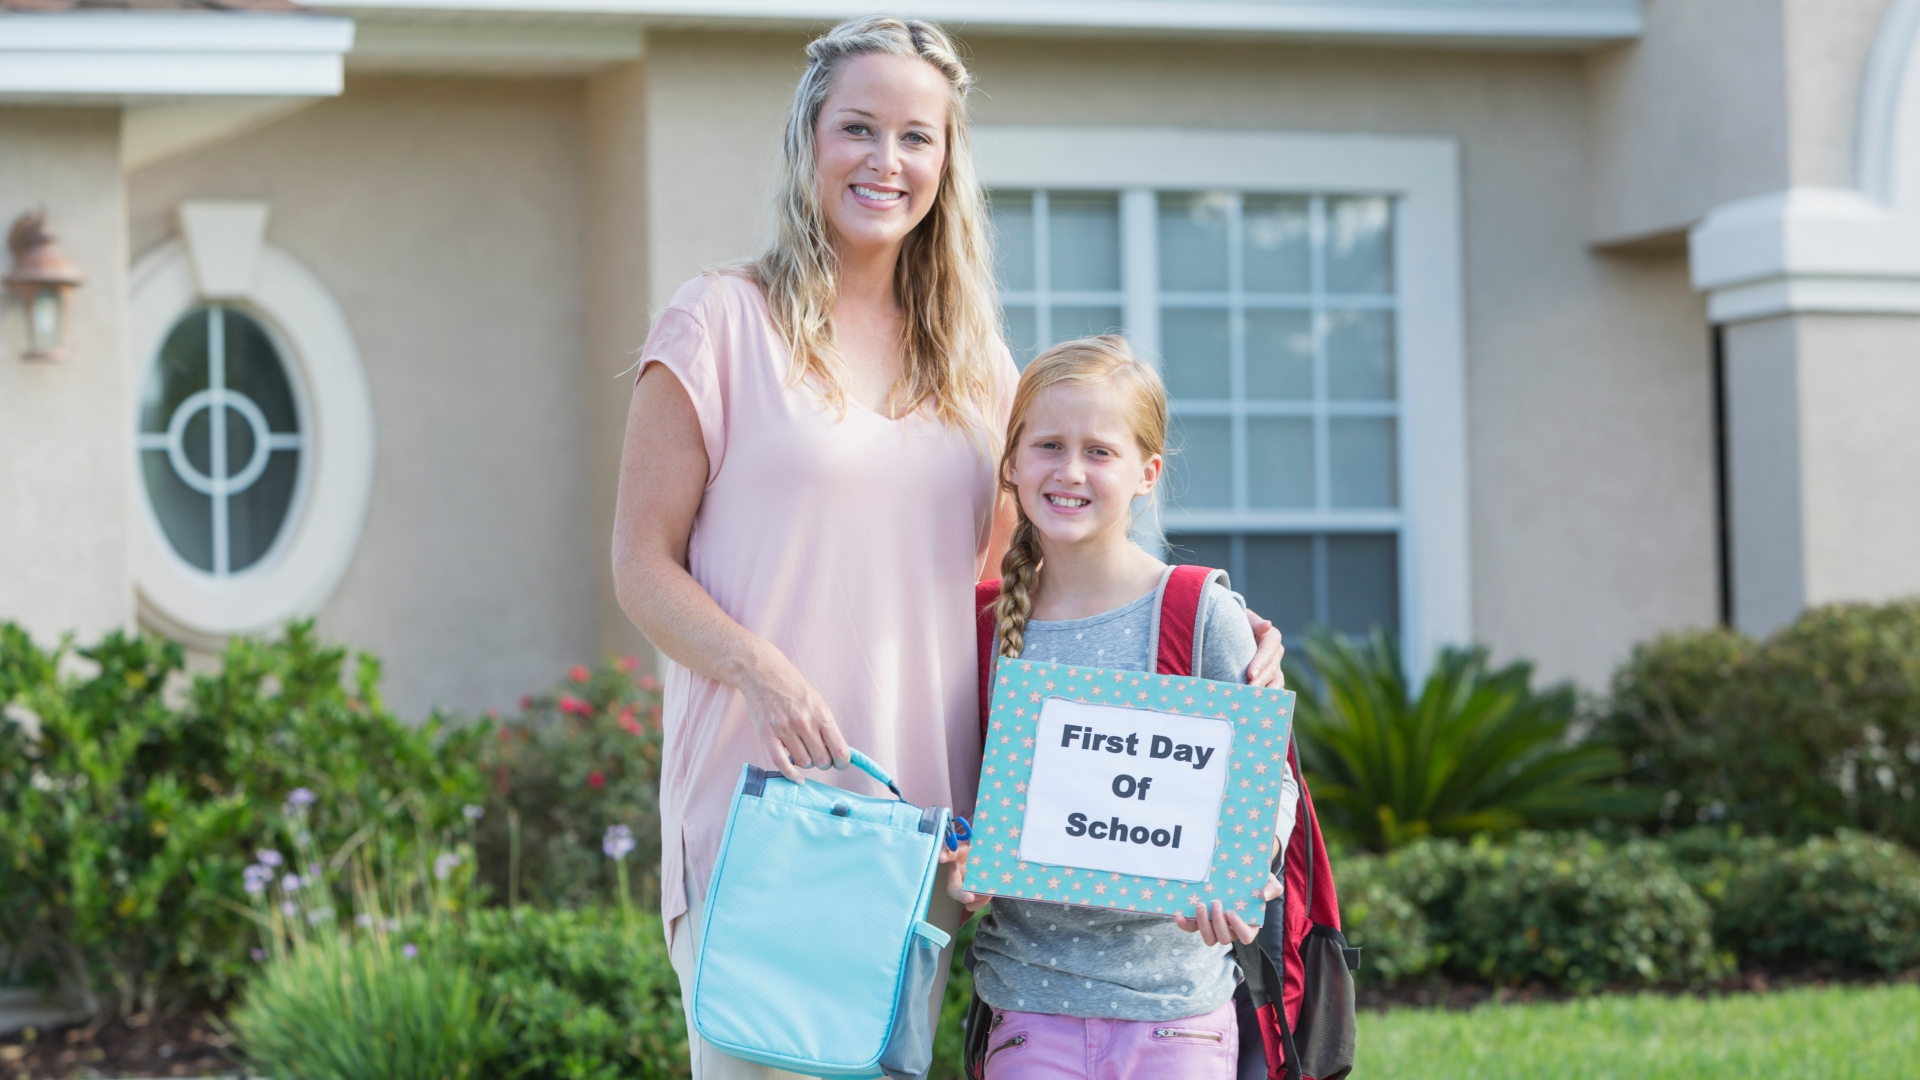 At the start of this school year, parents can check off one important item from their to-do list: how to keep their kids healthy. Atrium Health Levine Children's pediatricians share tips on everything from nutrition to sleep to anxiety, so parents can feel prepared as their kids head back to school.